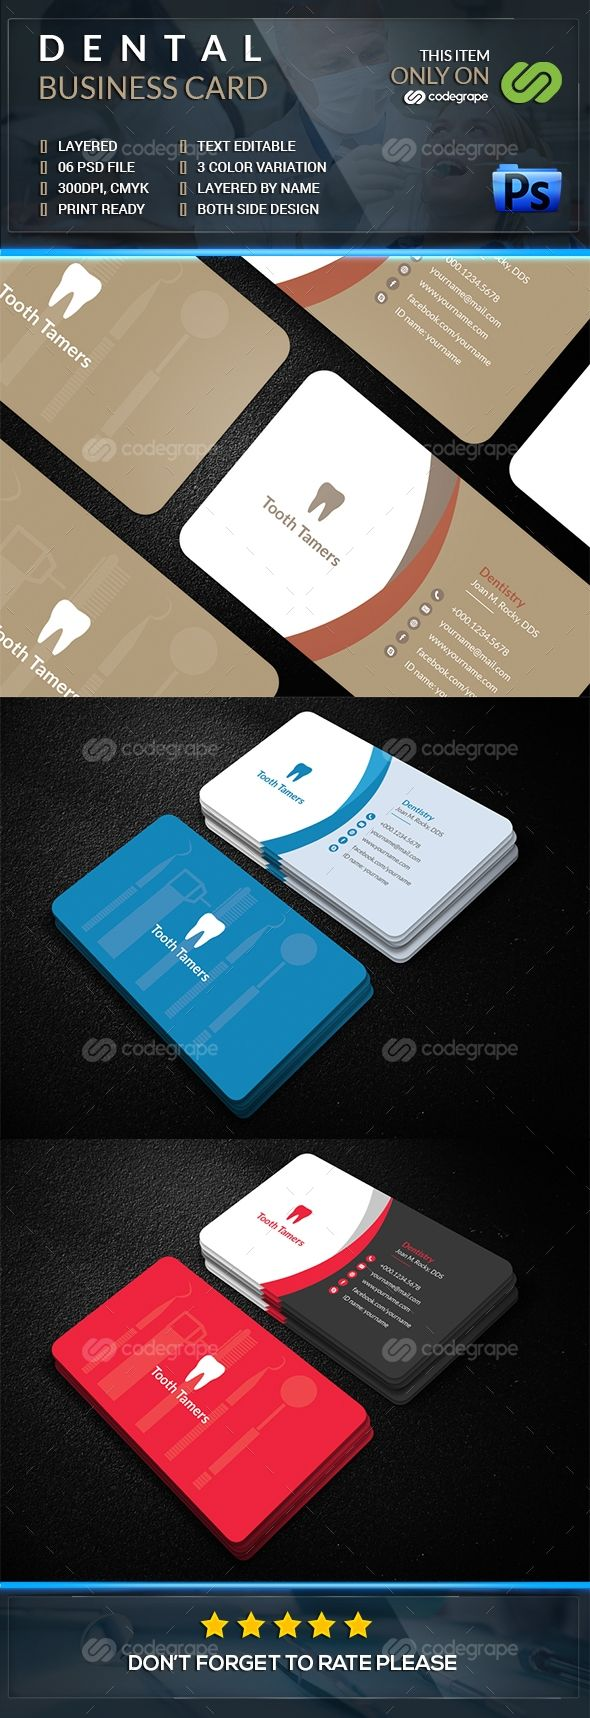 119 best dental clinic logo images on pinterest clinic design dental business card reheart Images